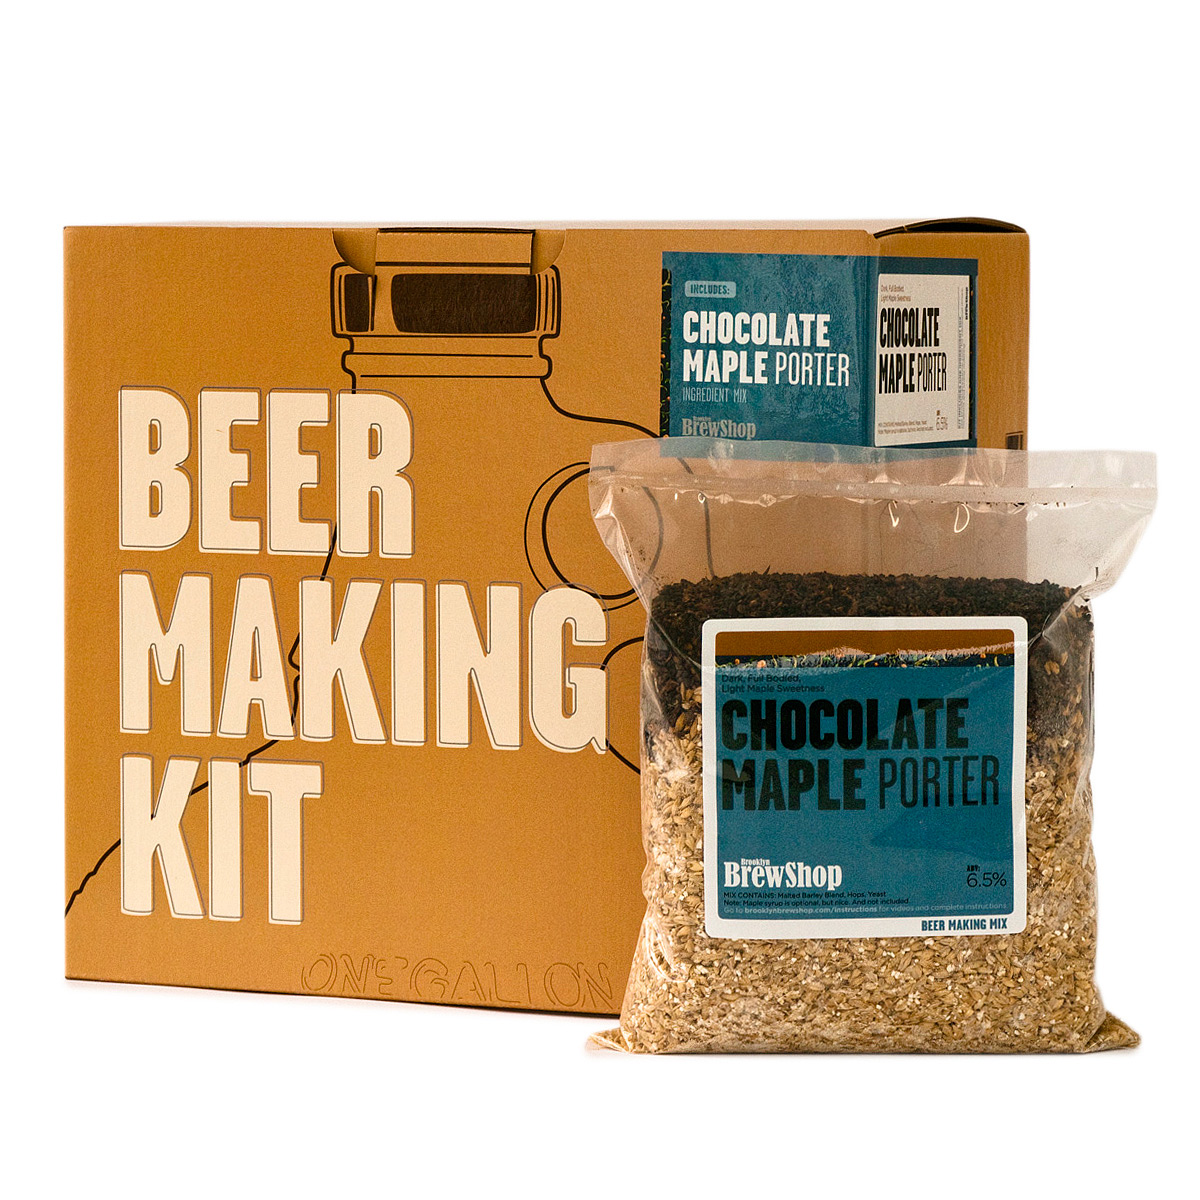 There's nothing more rewarding to a beer-loving dad than brewing his own!  This all-inclusive Beer Making Kit makes it easier than ever to get started as a homebrewer.  With options that range from porters to pale ales, Dad can learn the art of creating his favorite cold ones in only 4 weeks. Get it here for only $40.00!